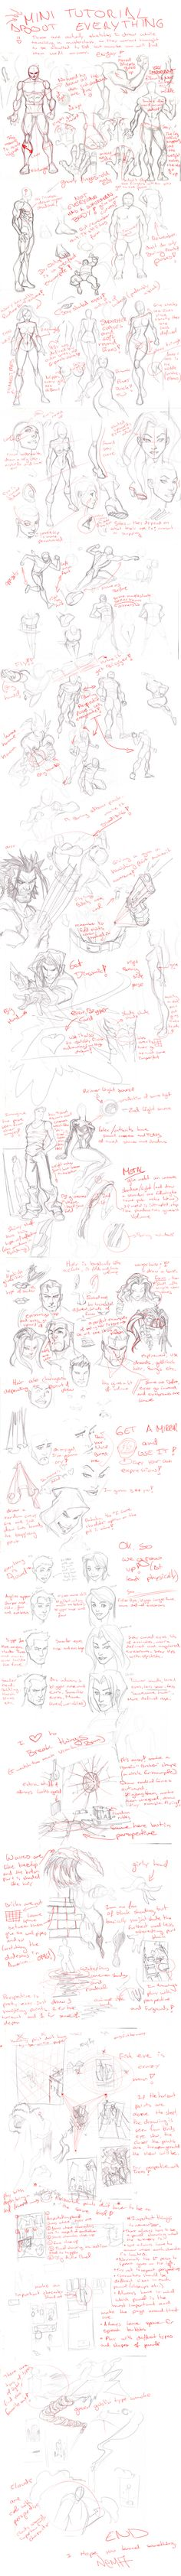 Everything Mini Tutorial by *CarlosGomezArtist on deviantART Everything! Yes!